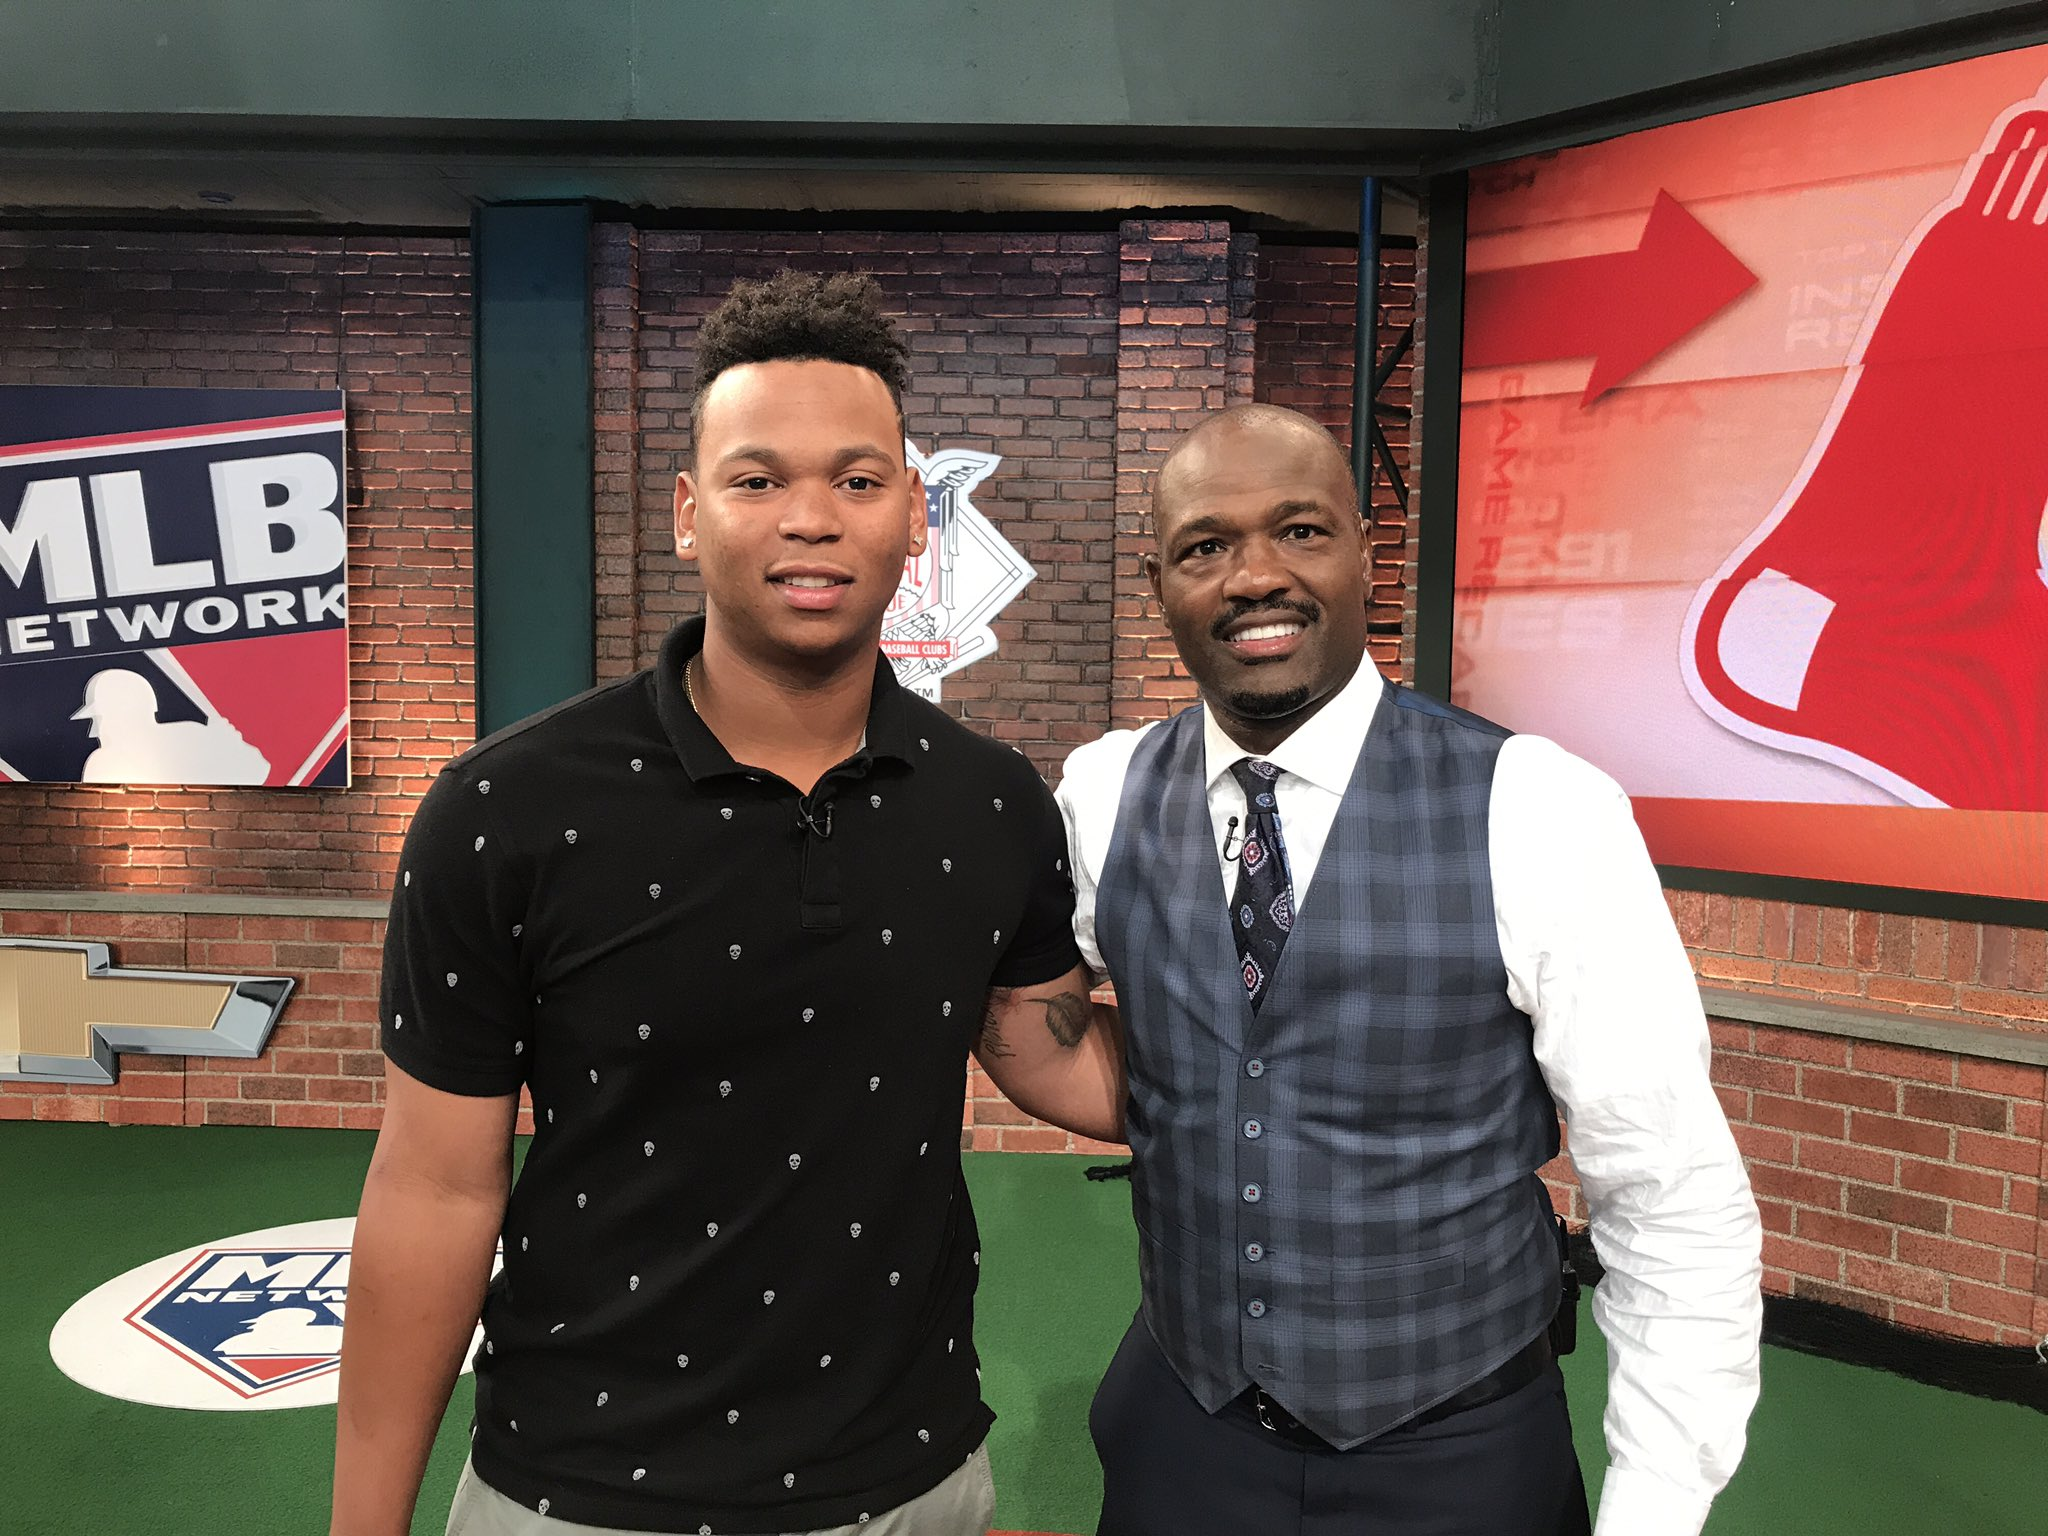 Harold steps inside the box in #Studio42 with @RedSox 3B @Rafael_Devers next on #TheRundown! https://t.co/CtI0dNiRkt